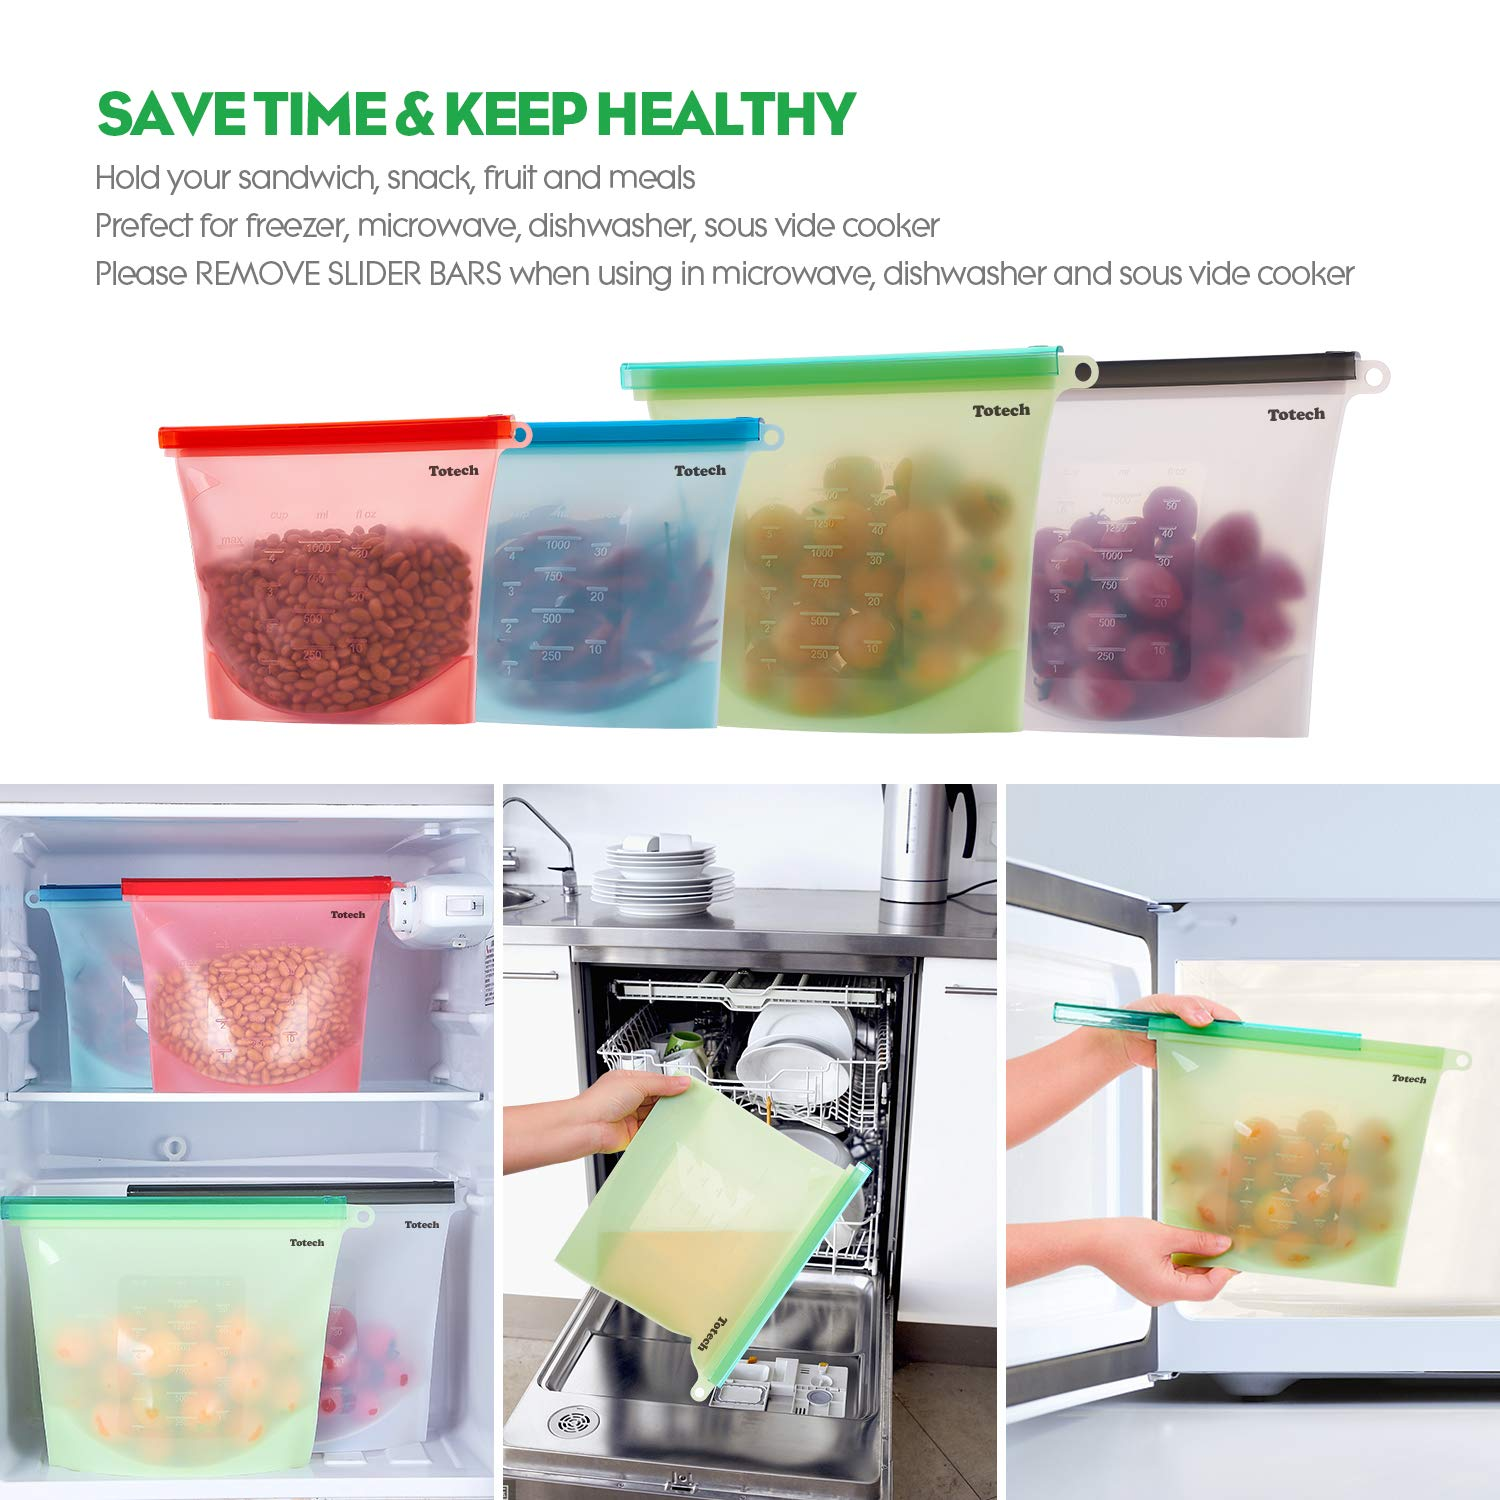 Reusable Silicone Food Storage Bags, 4 Pack Airtight BPA Free Snack Bags (2 Large & 2 Medium + Bonus Silicone Collapsible Straws & Produce Storage Bags) Baggies for Cooking, Sous Vide, Sandwich, Meat